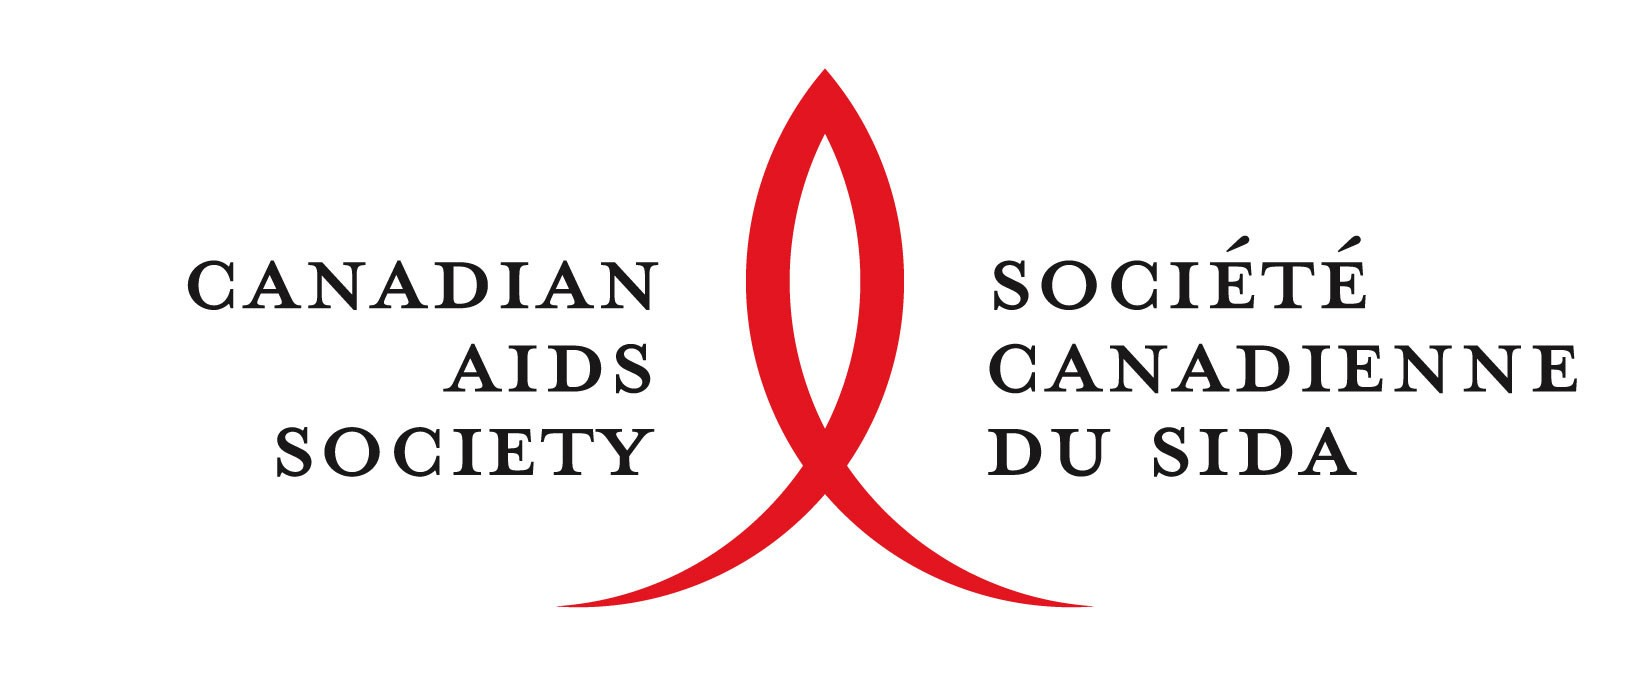 canadians_aid_society